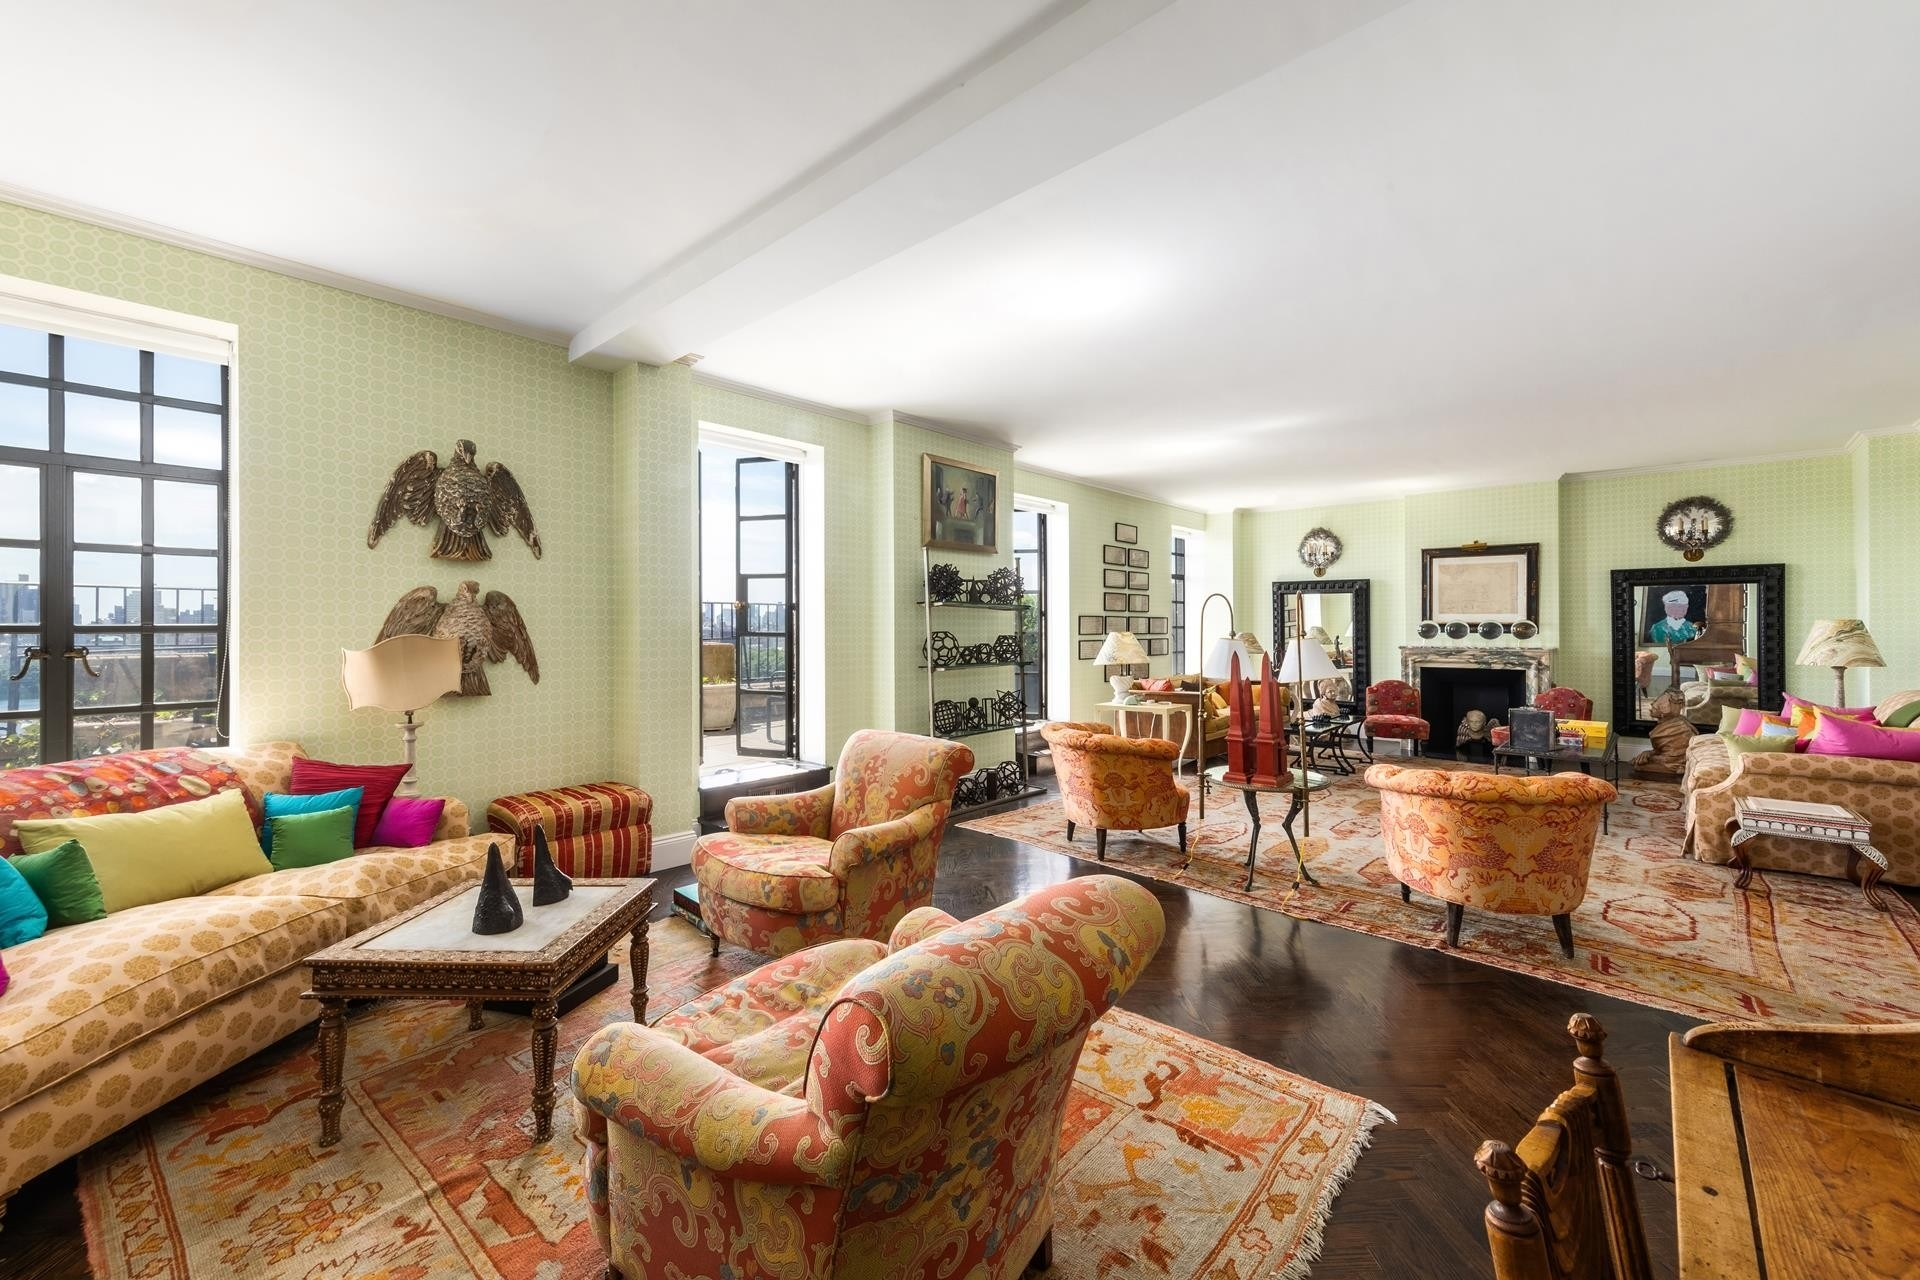 3. Co-op Properties 為 特賣 在 EL DORADO, 300 Central Park West, 15/16F 上西区, 纽约, NY 10024